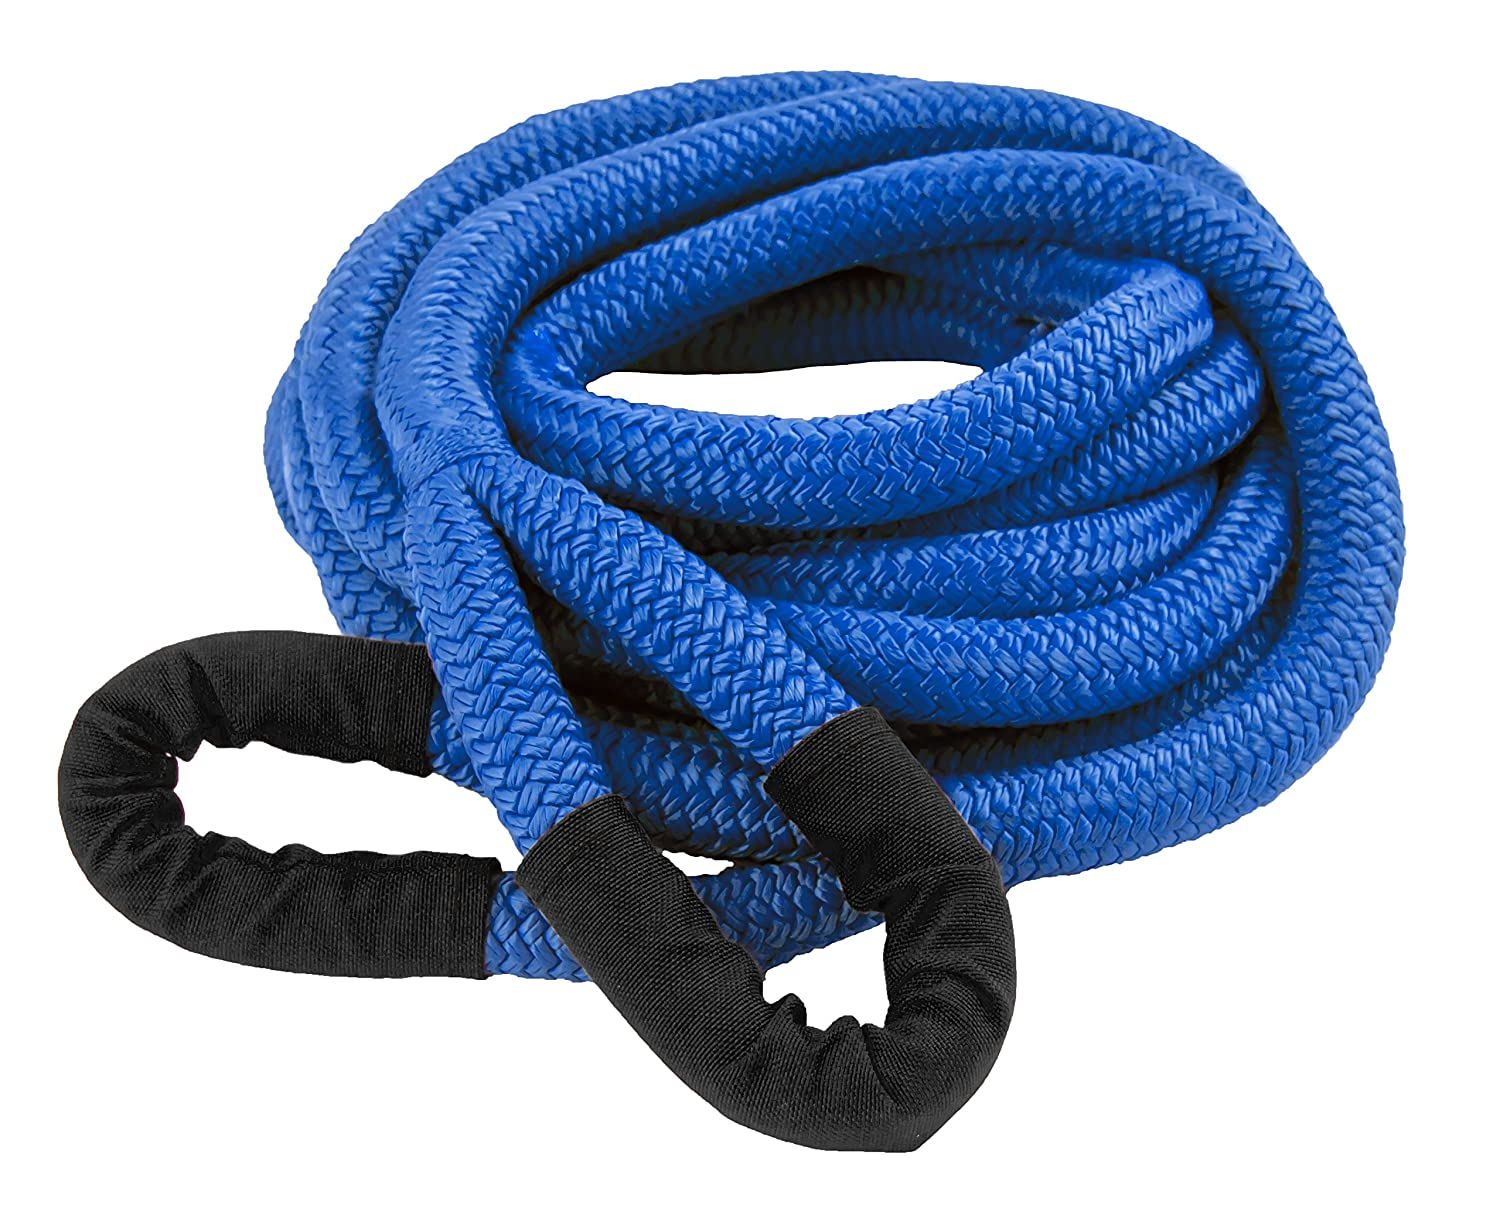 The Mibro Group 448501 Kinetic Energy Recovery Double Nylon Braided Rope with Tote Bag, 1/2' x 20' 1/2 x 20' DitchPig 447051